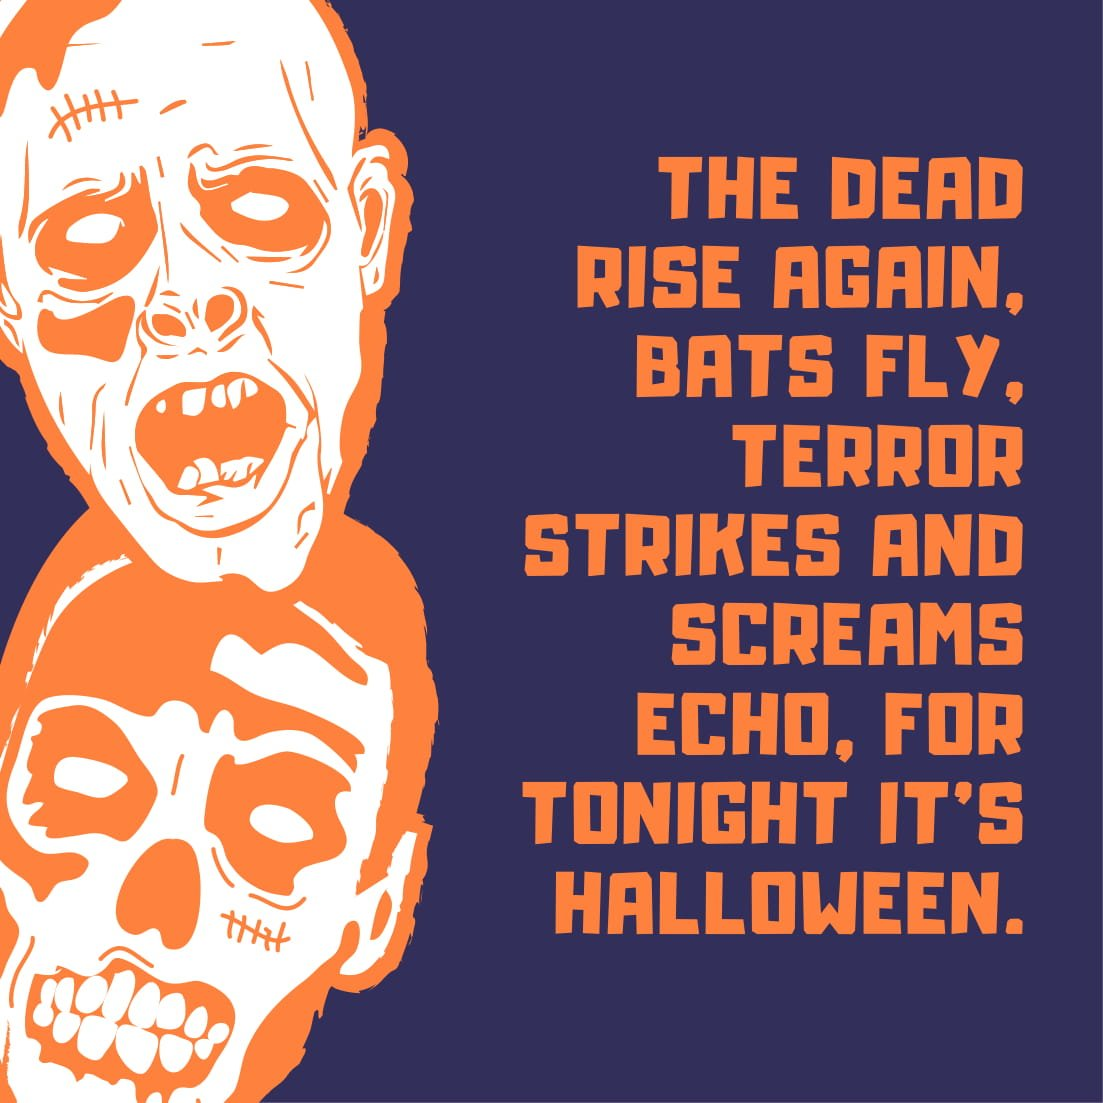 The dead rise again, bats fly, terror strikes and screams echo, for tonight it's Halloween.